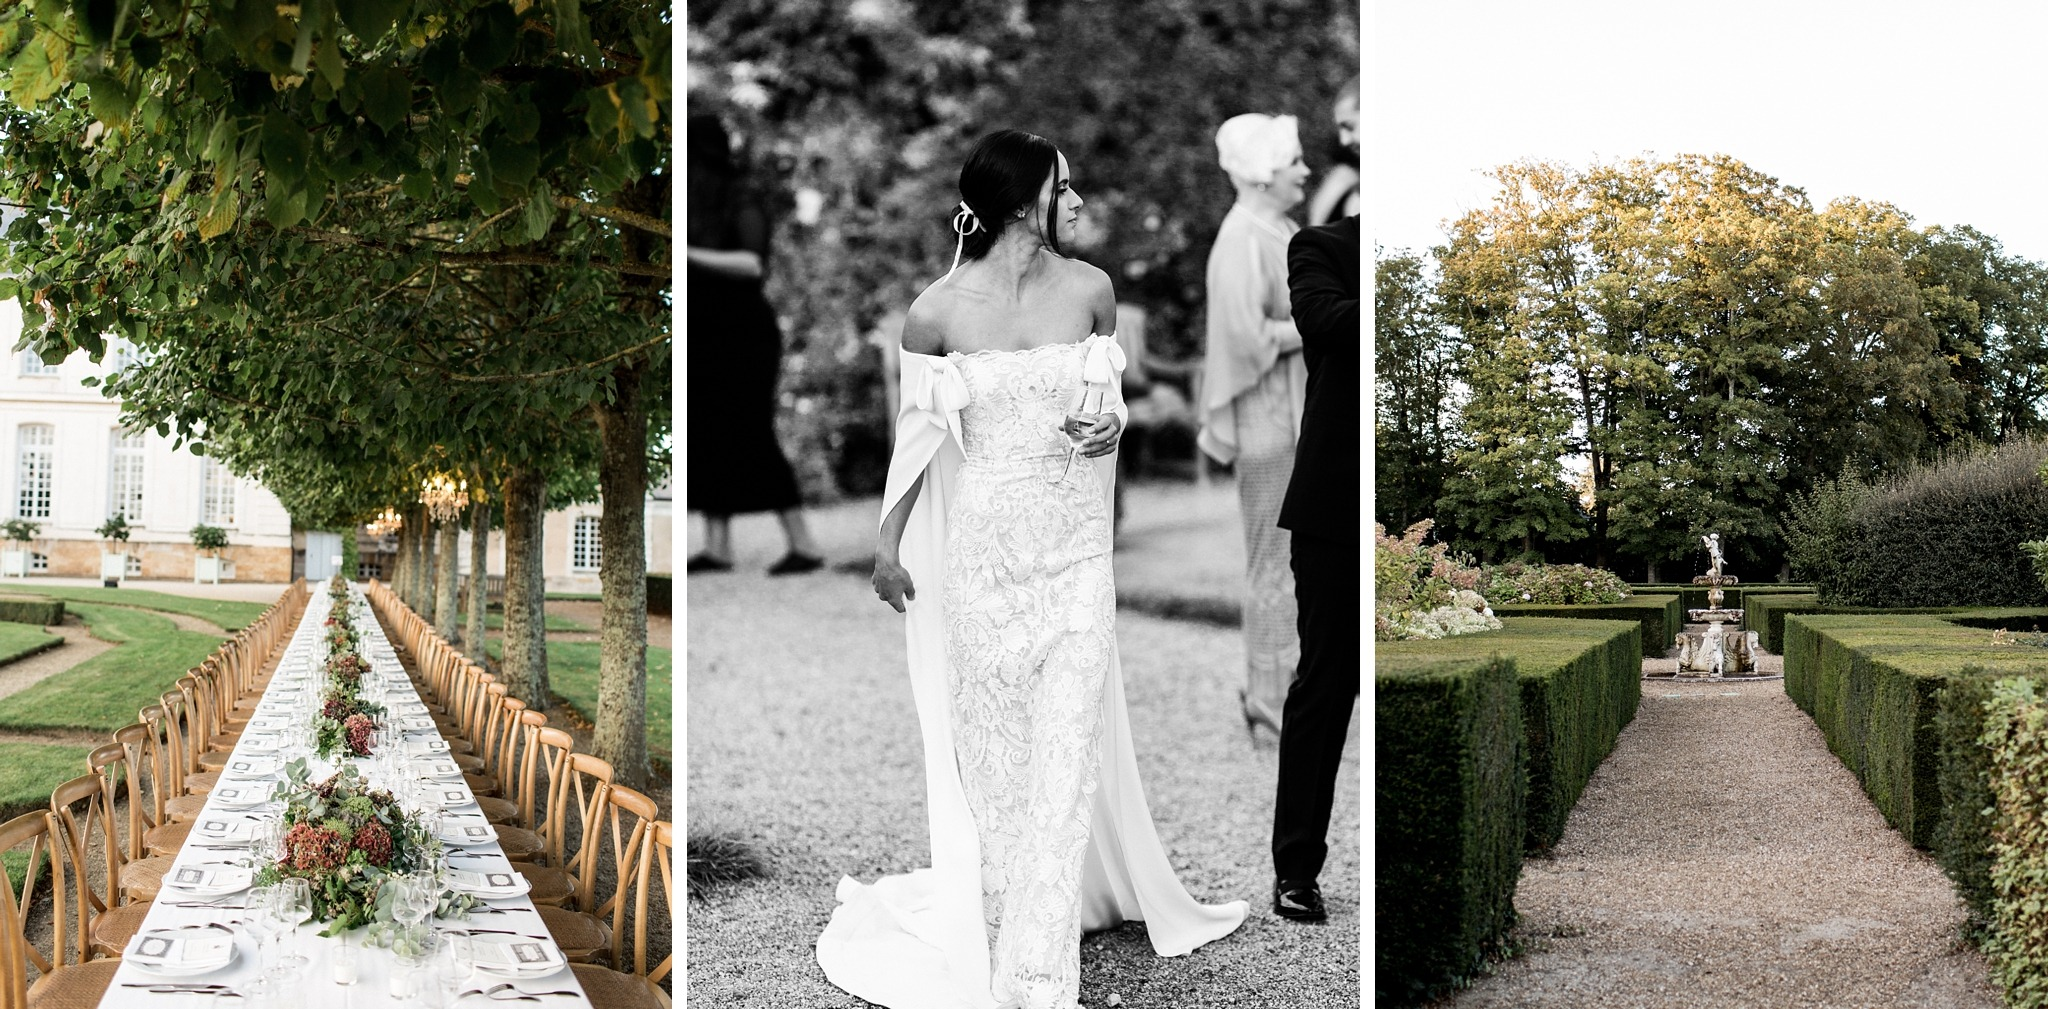 chateau-wedding-france-chanel-eric-as-seen-on-vogue-with-sarah-falugo-photographer_0192